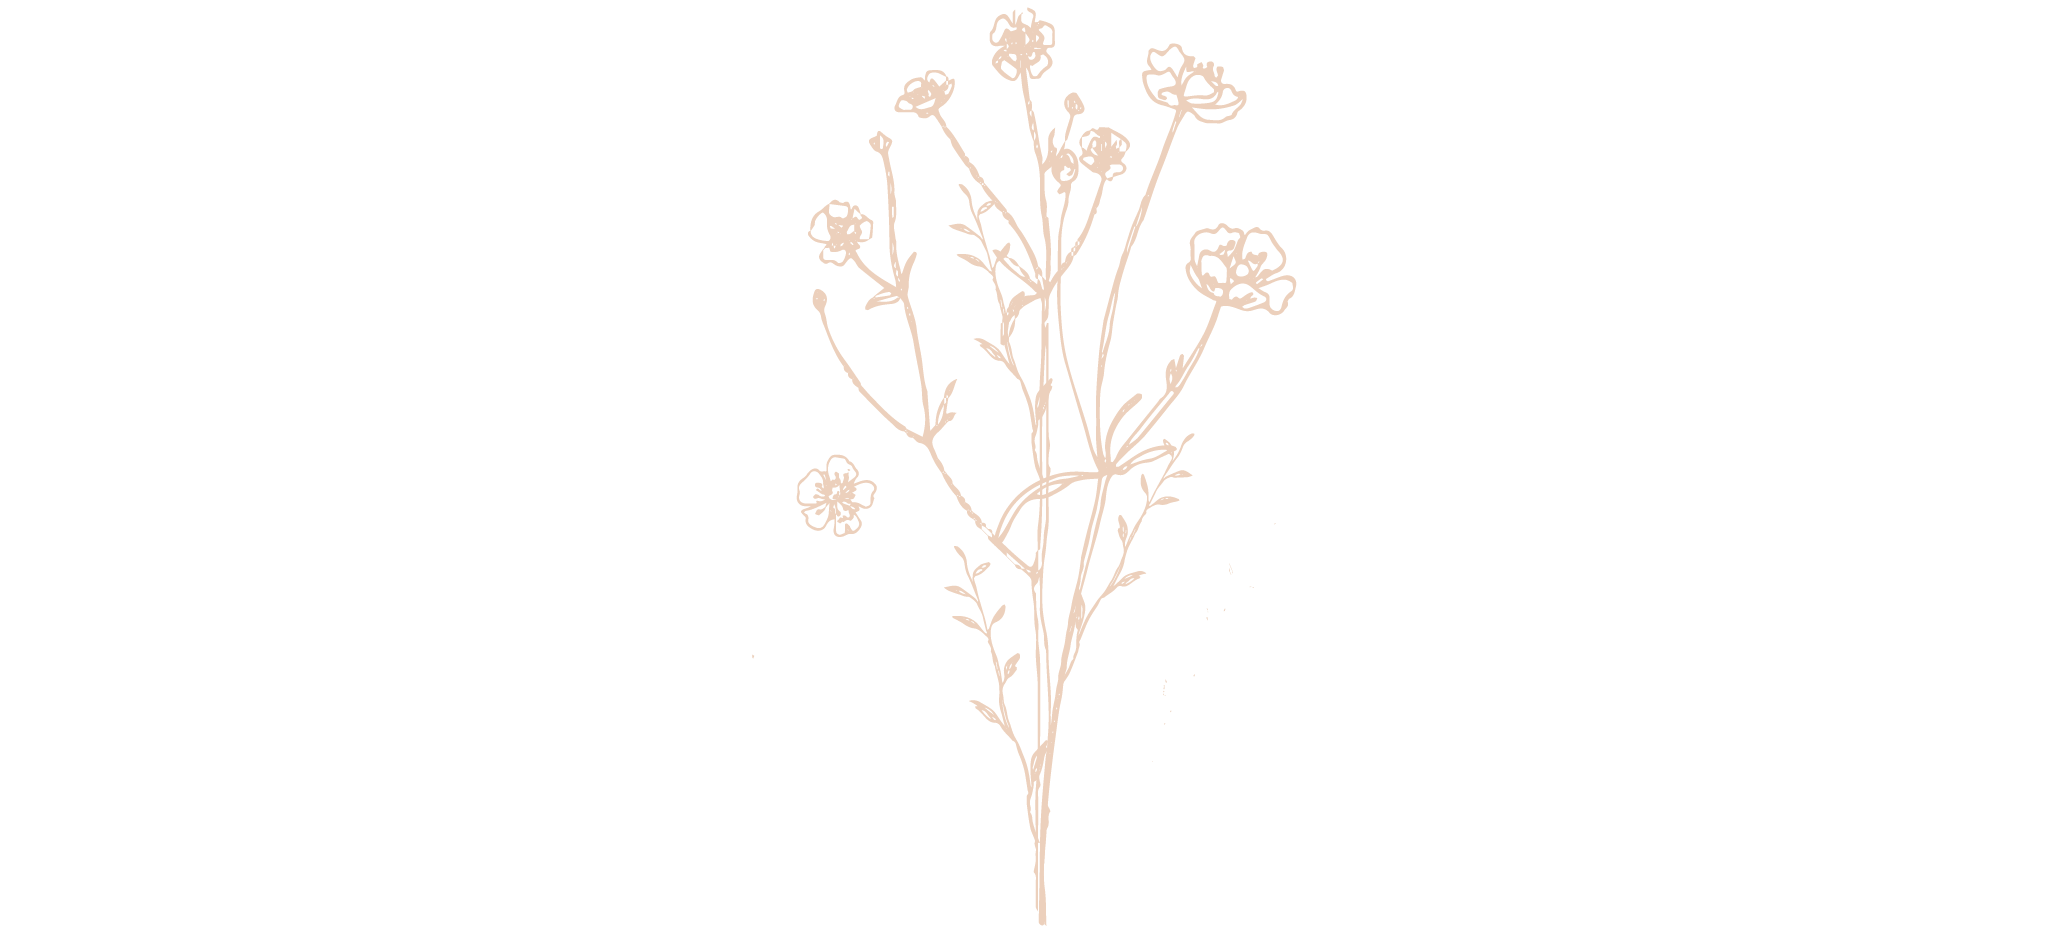 Flowers 2-02.png